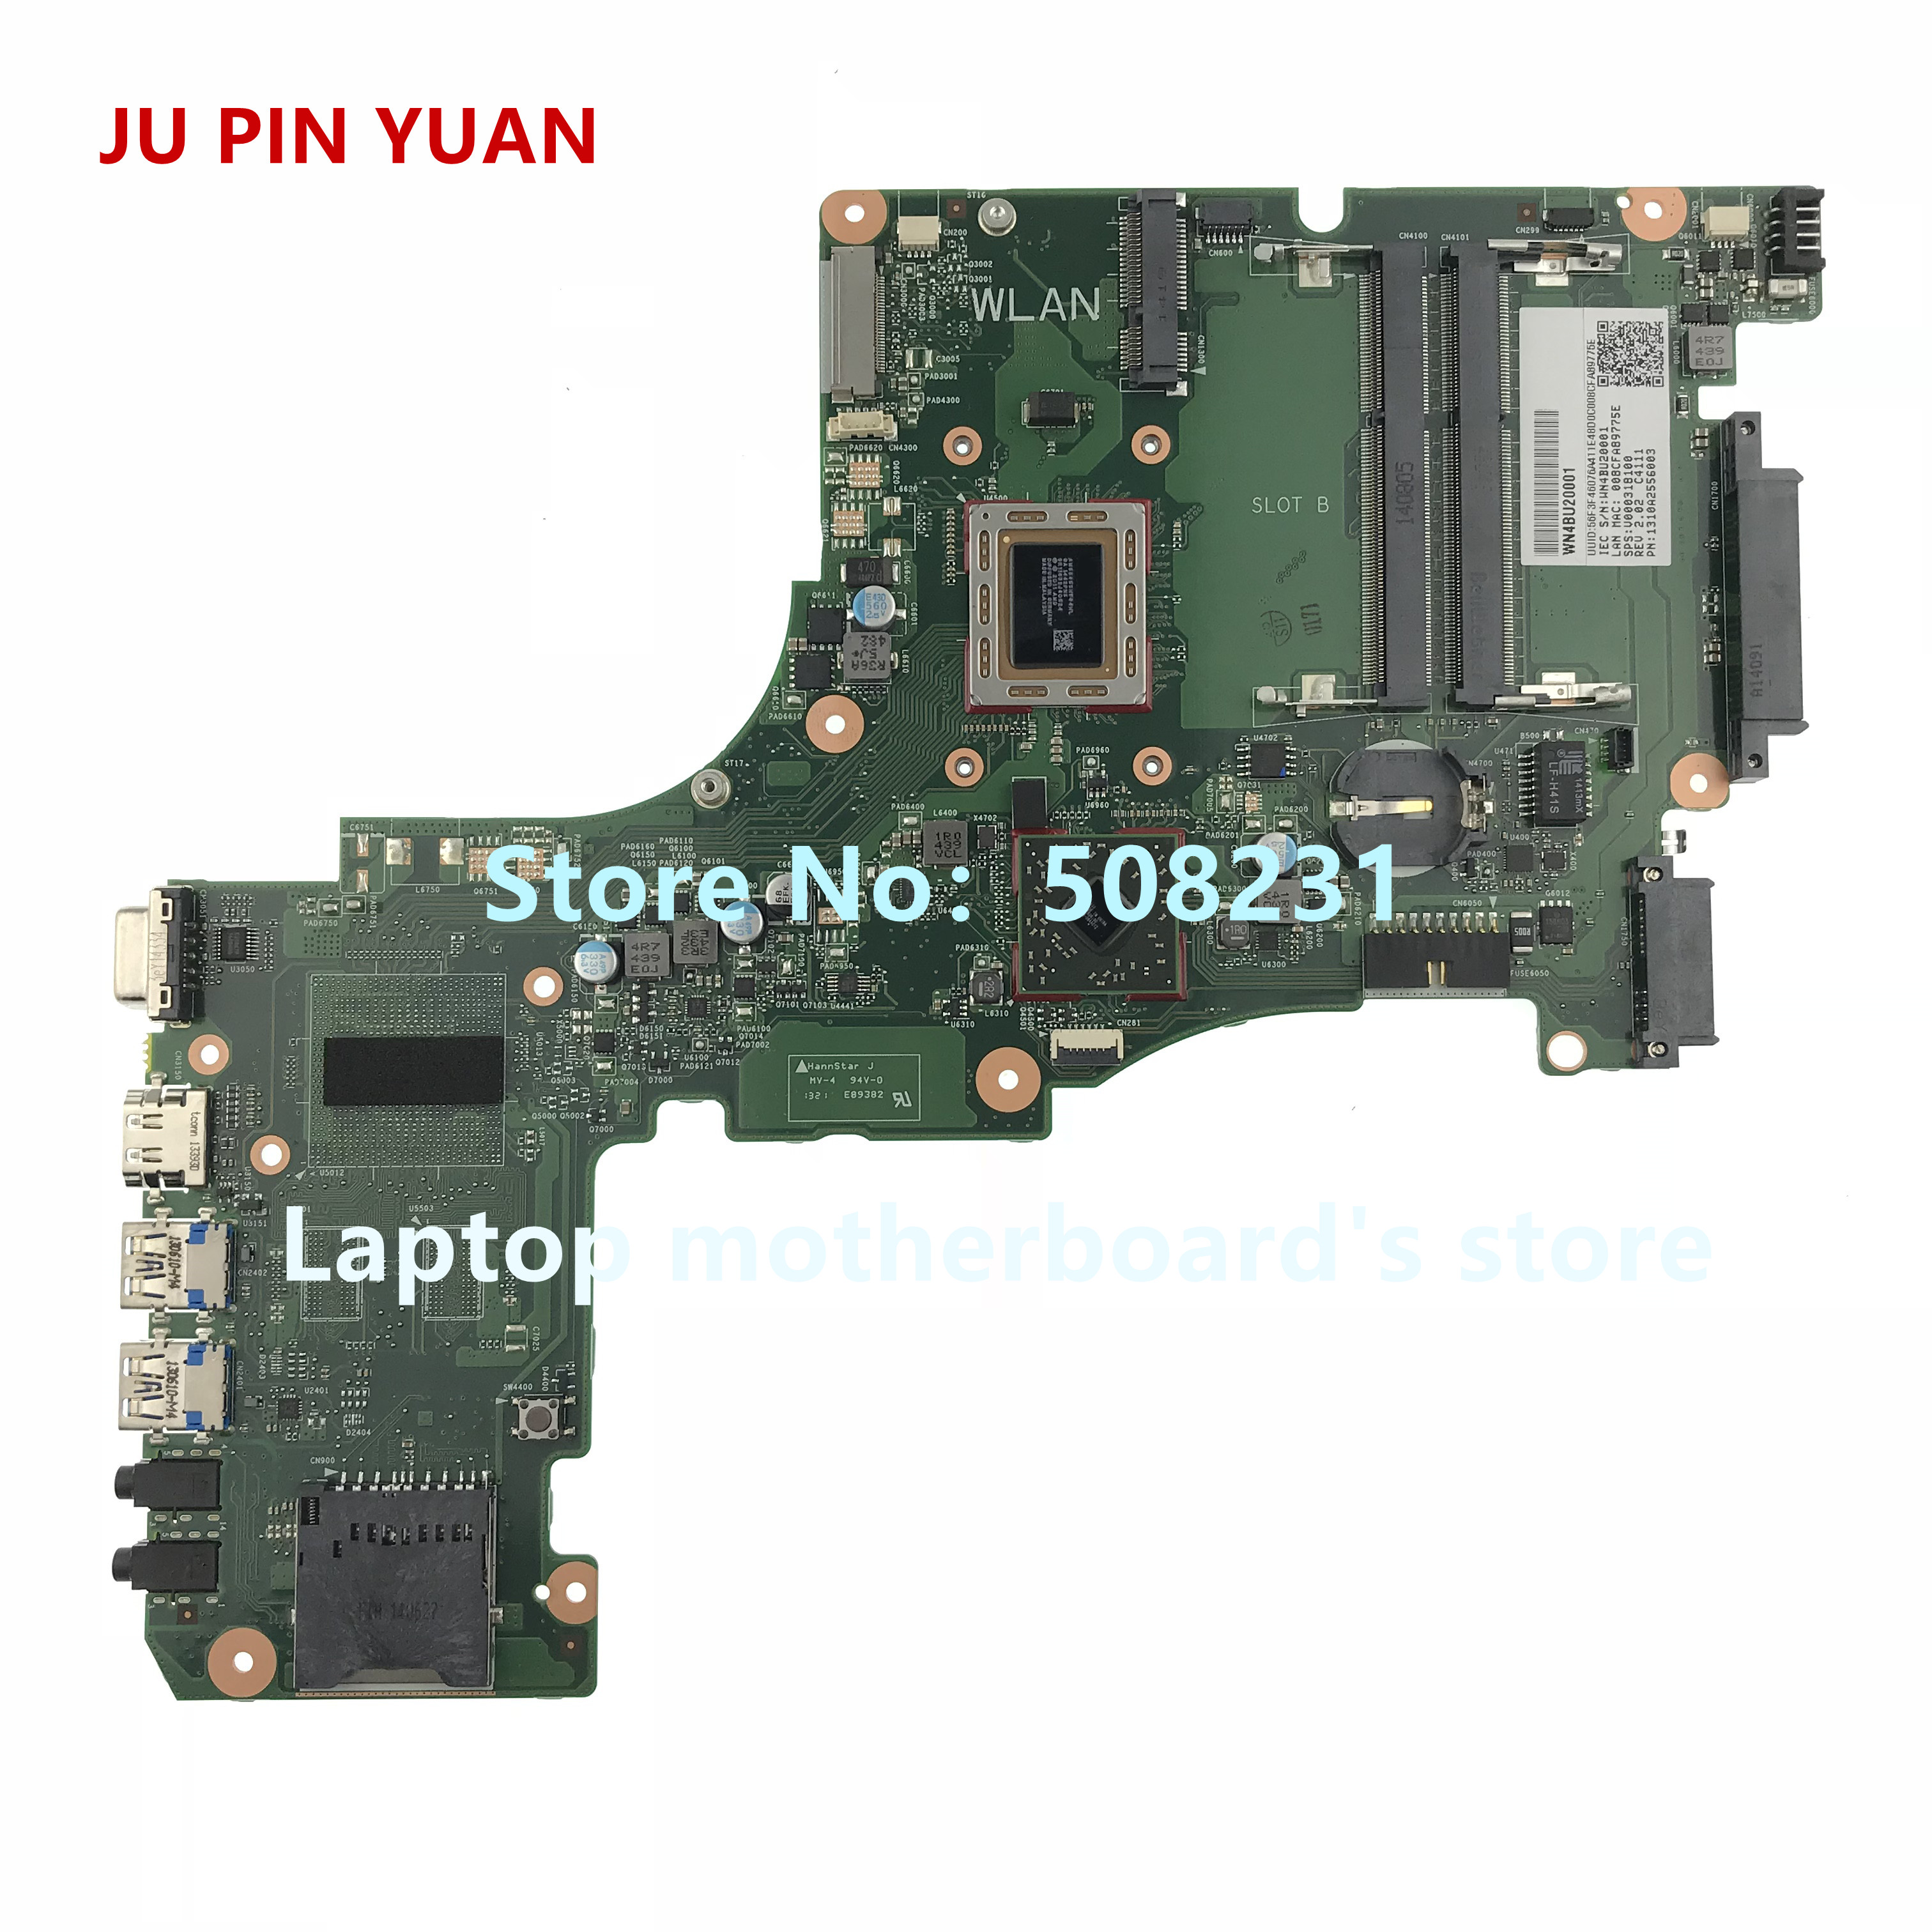 JU PIN YUAN V000318100 Mainboard for Toshiba Satellite L50DT L50DT-A Laptop Motherboard CR10ADTG-6050A2556001-MB-A02JU PIN YUAN V000318100 Mainboard for Toshiba Satellite L50DT L50DT-A Laptop Motherboard CR10ADTG-6050A2556001-MB-A02